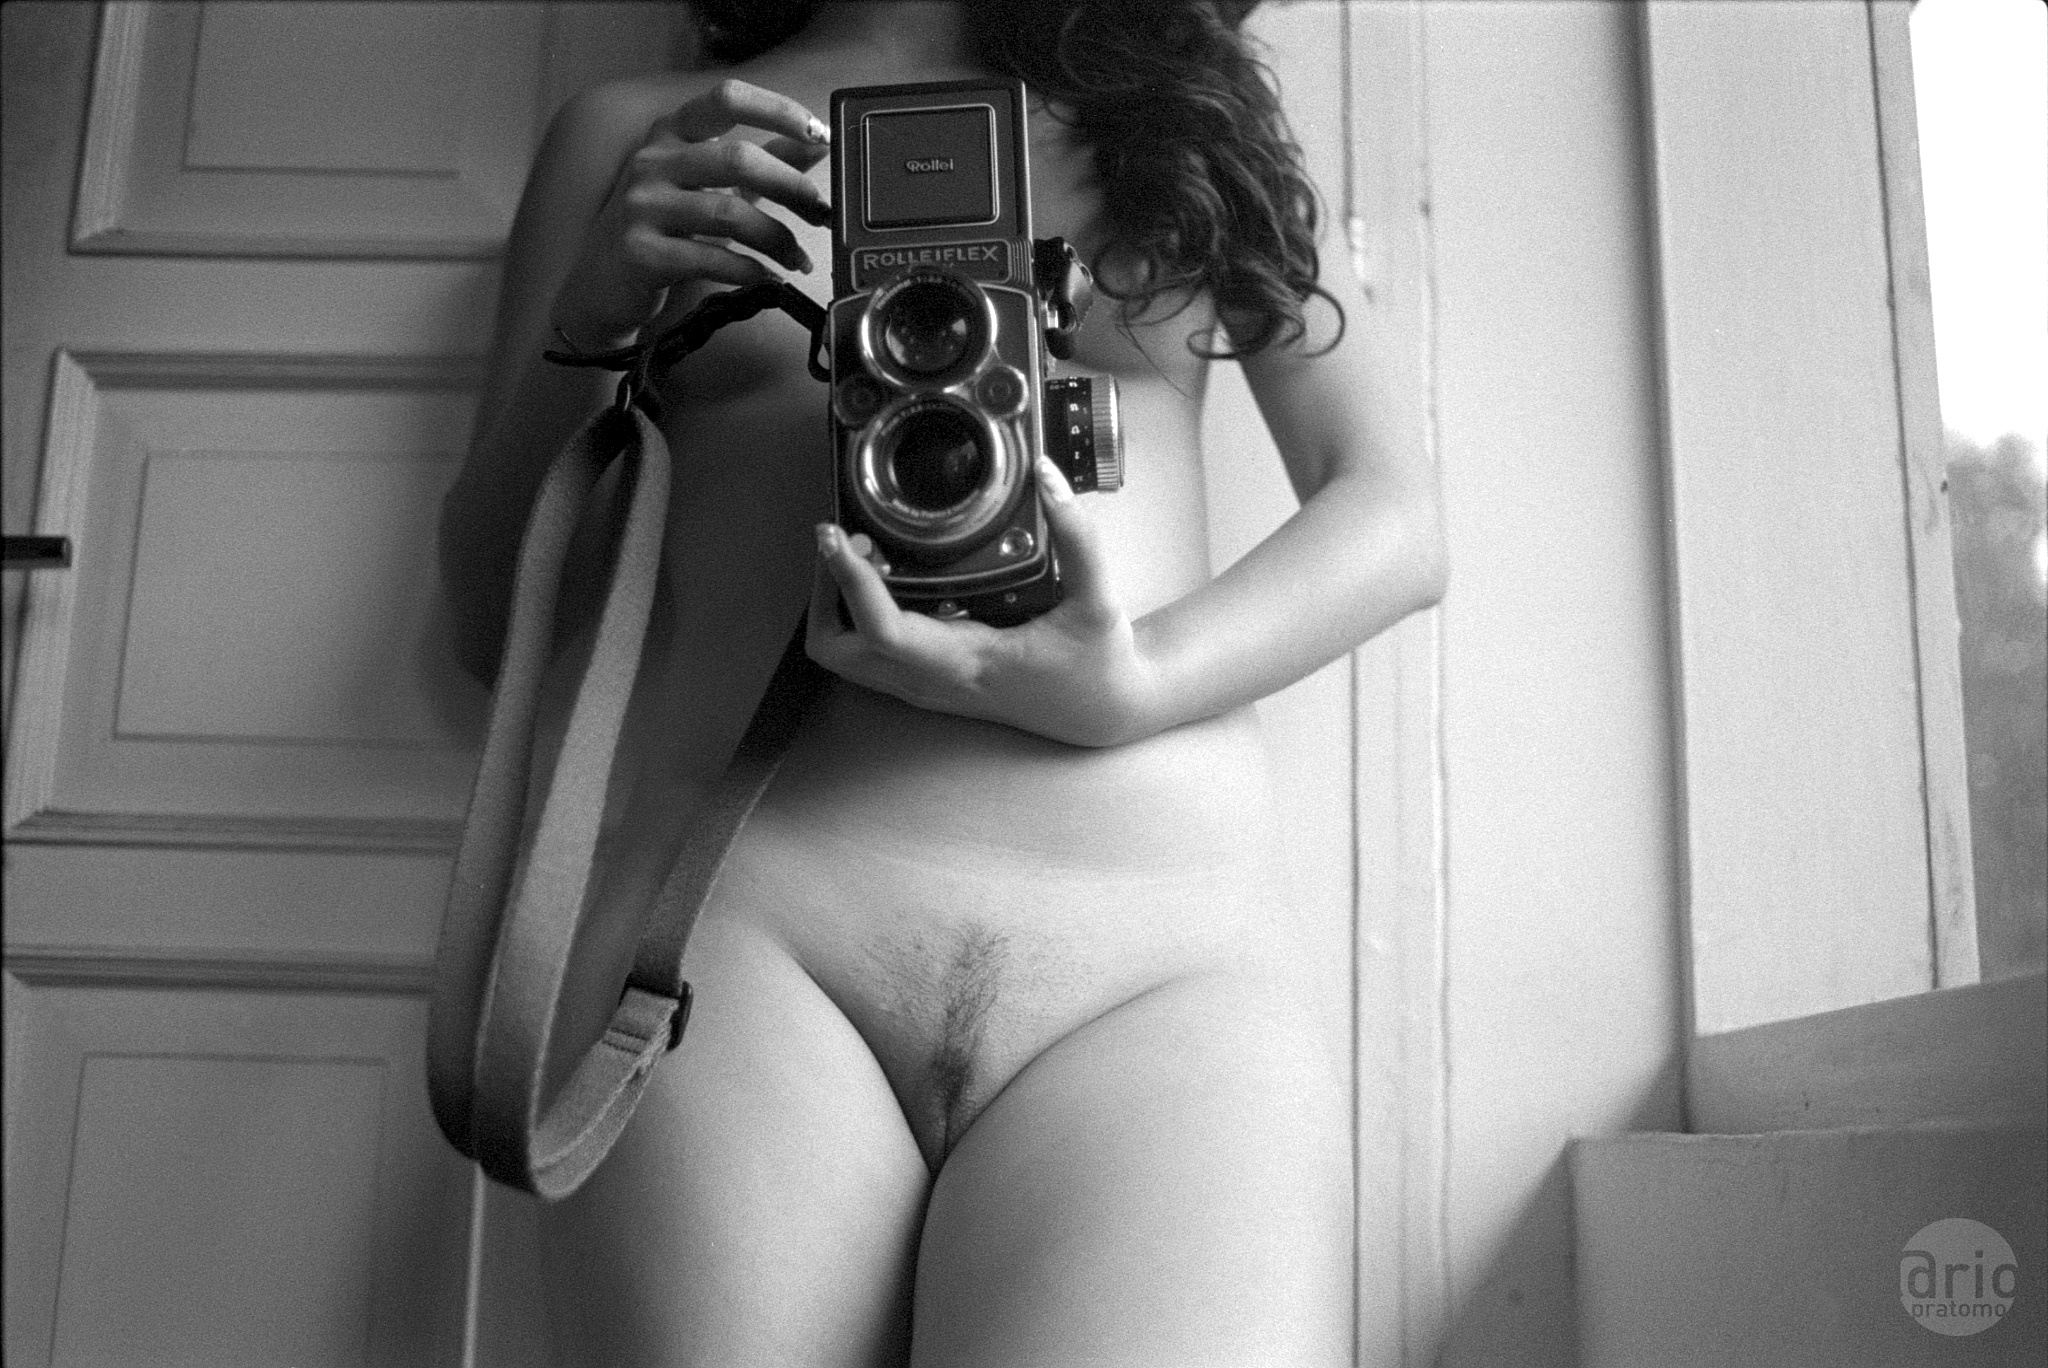 a Rolleiflex by ariodeh